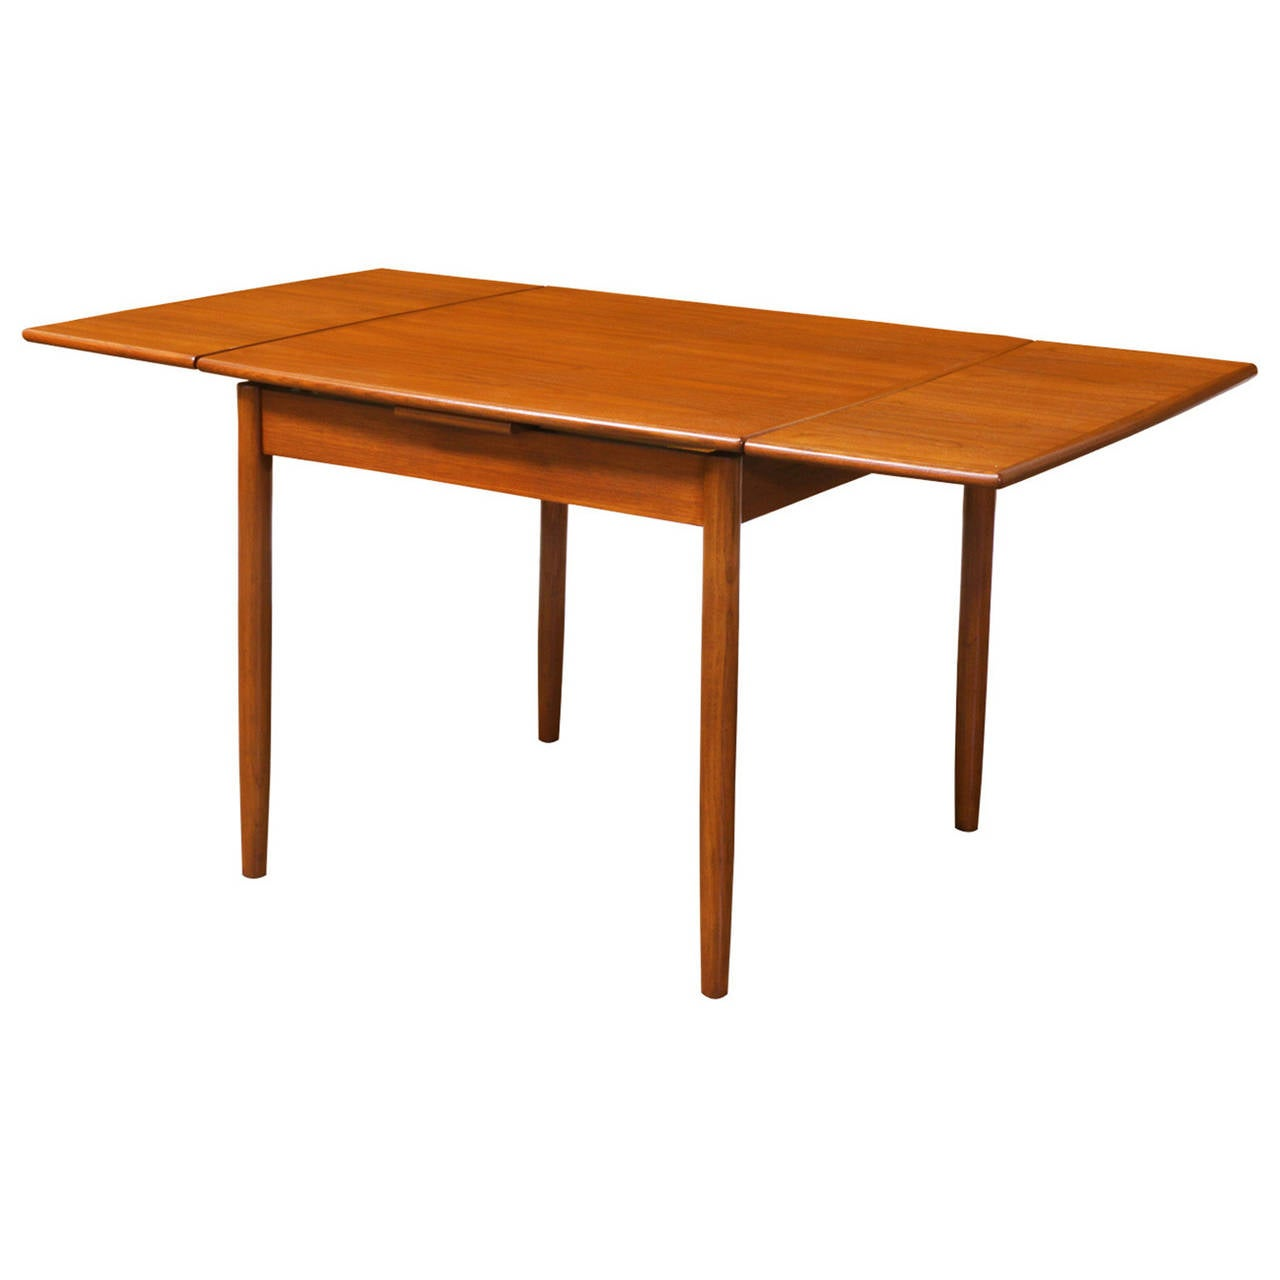 Danish modern teak square draw leaf dining table at 1stdibs - Refinish contemporary dining room tables ...